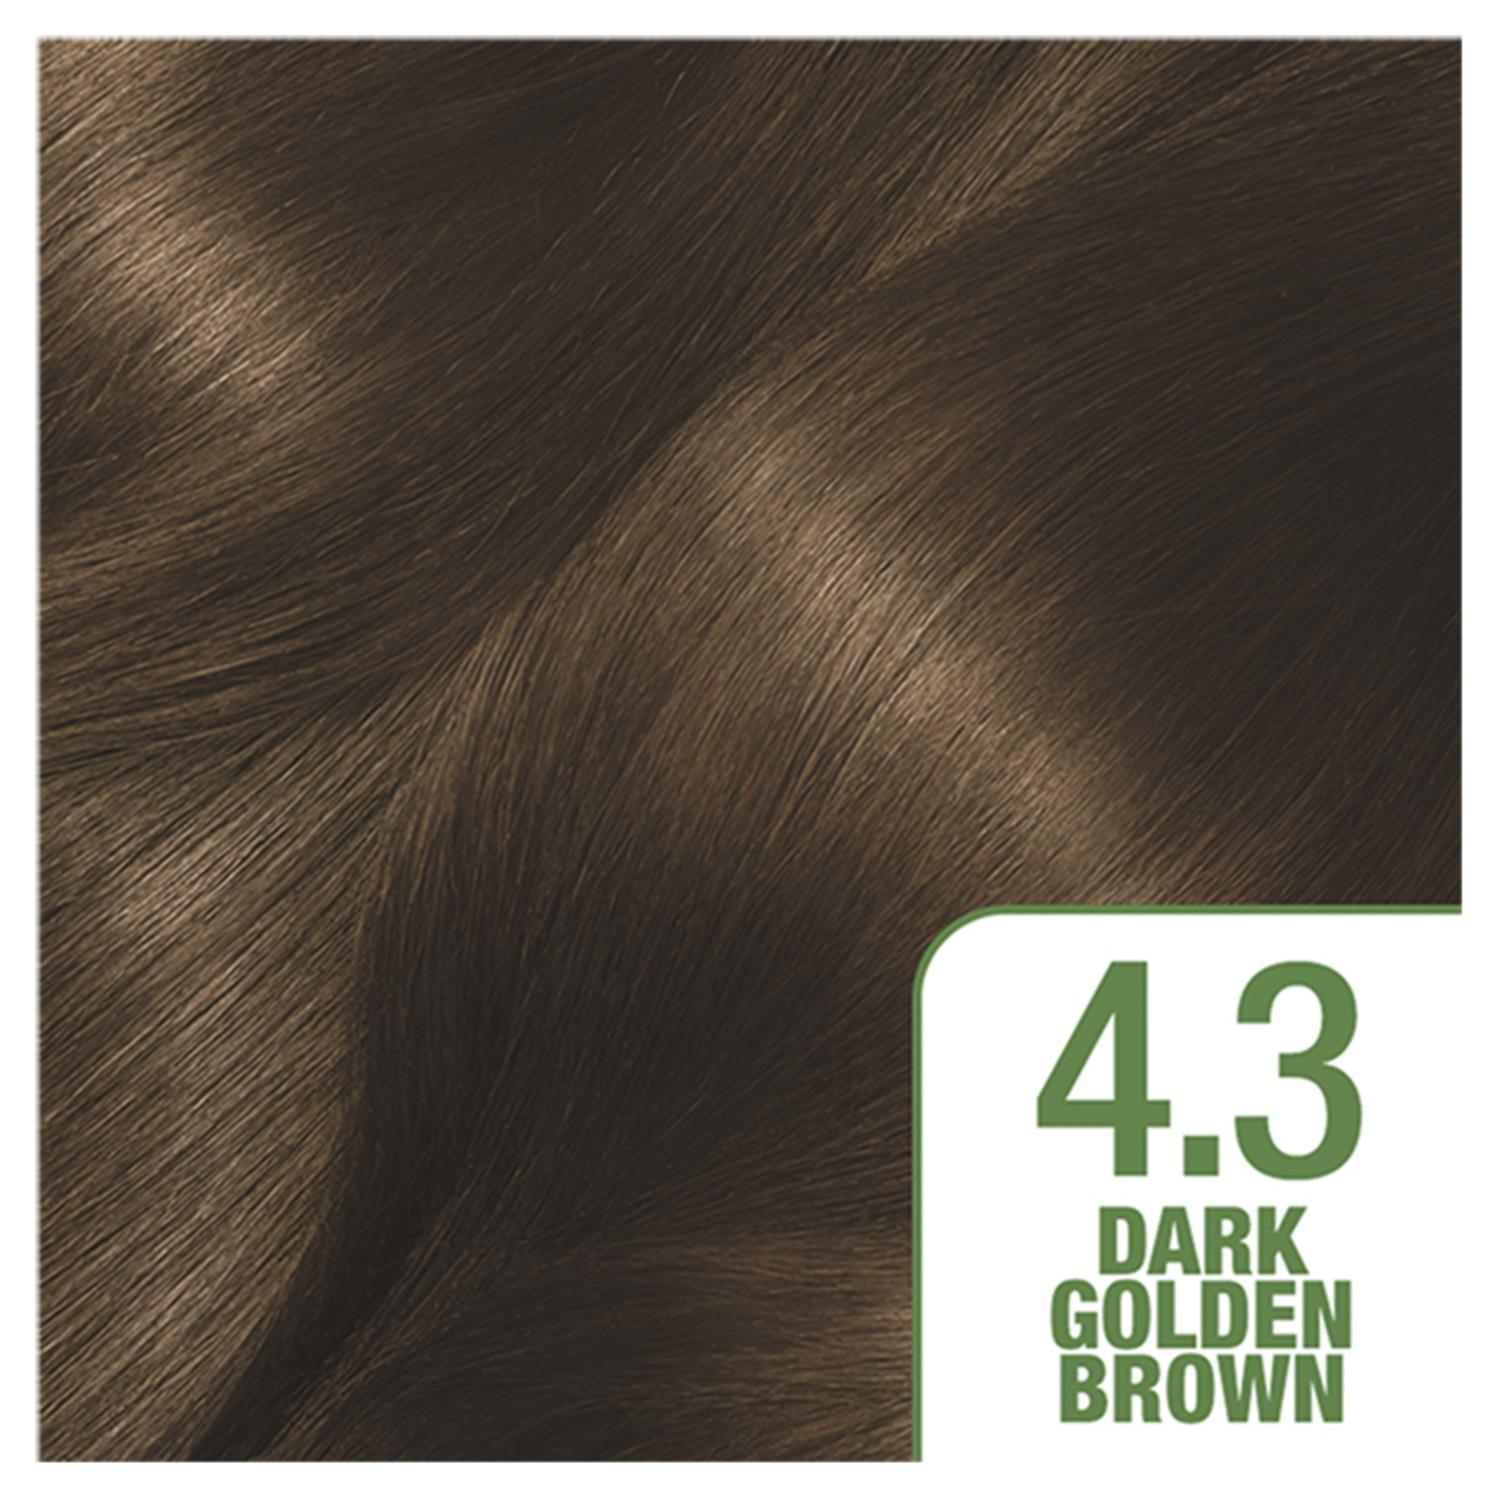 thumbnail 82 - 3 Pack Garnier Nutrisse Permanent Hair Dye With Different Shades